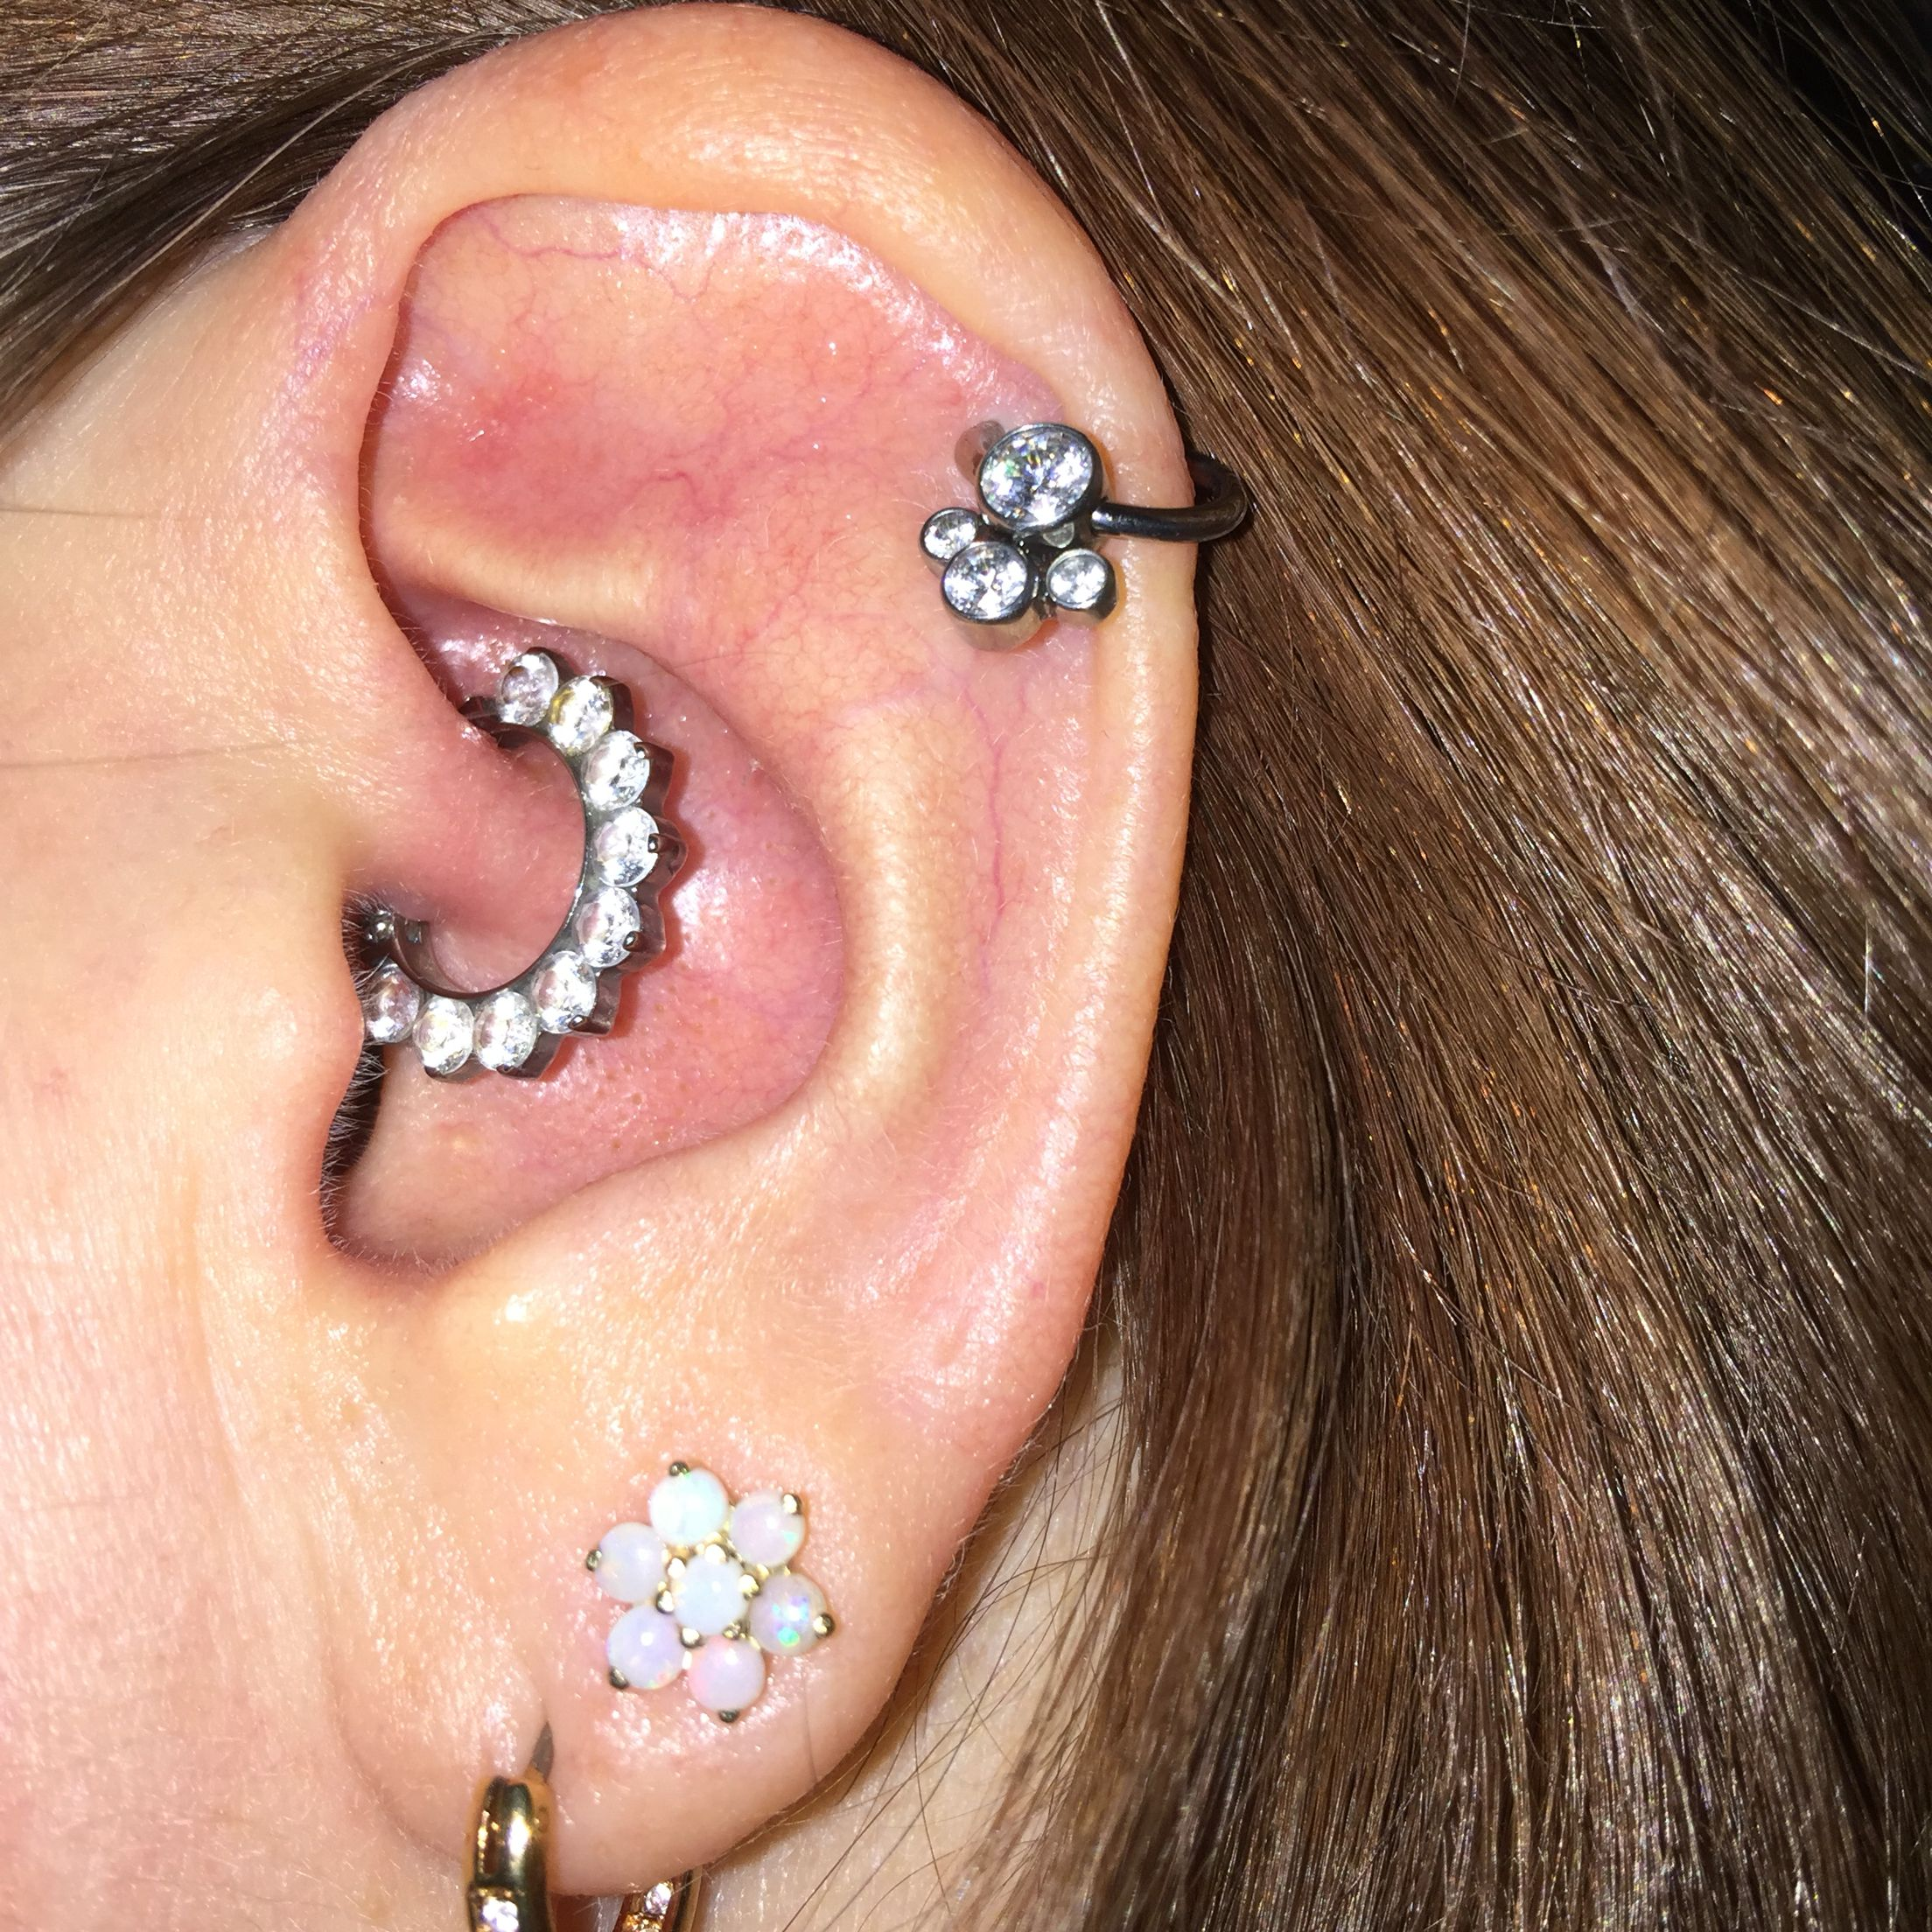 Nose piercing without earring  daithindustrialstrengthanatometalAdornpiercing  Piercings